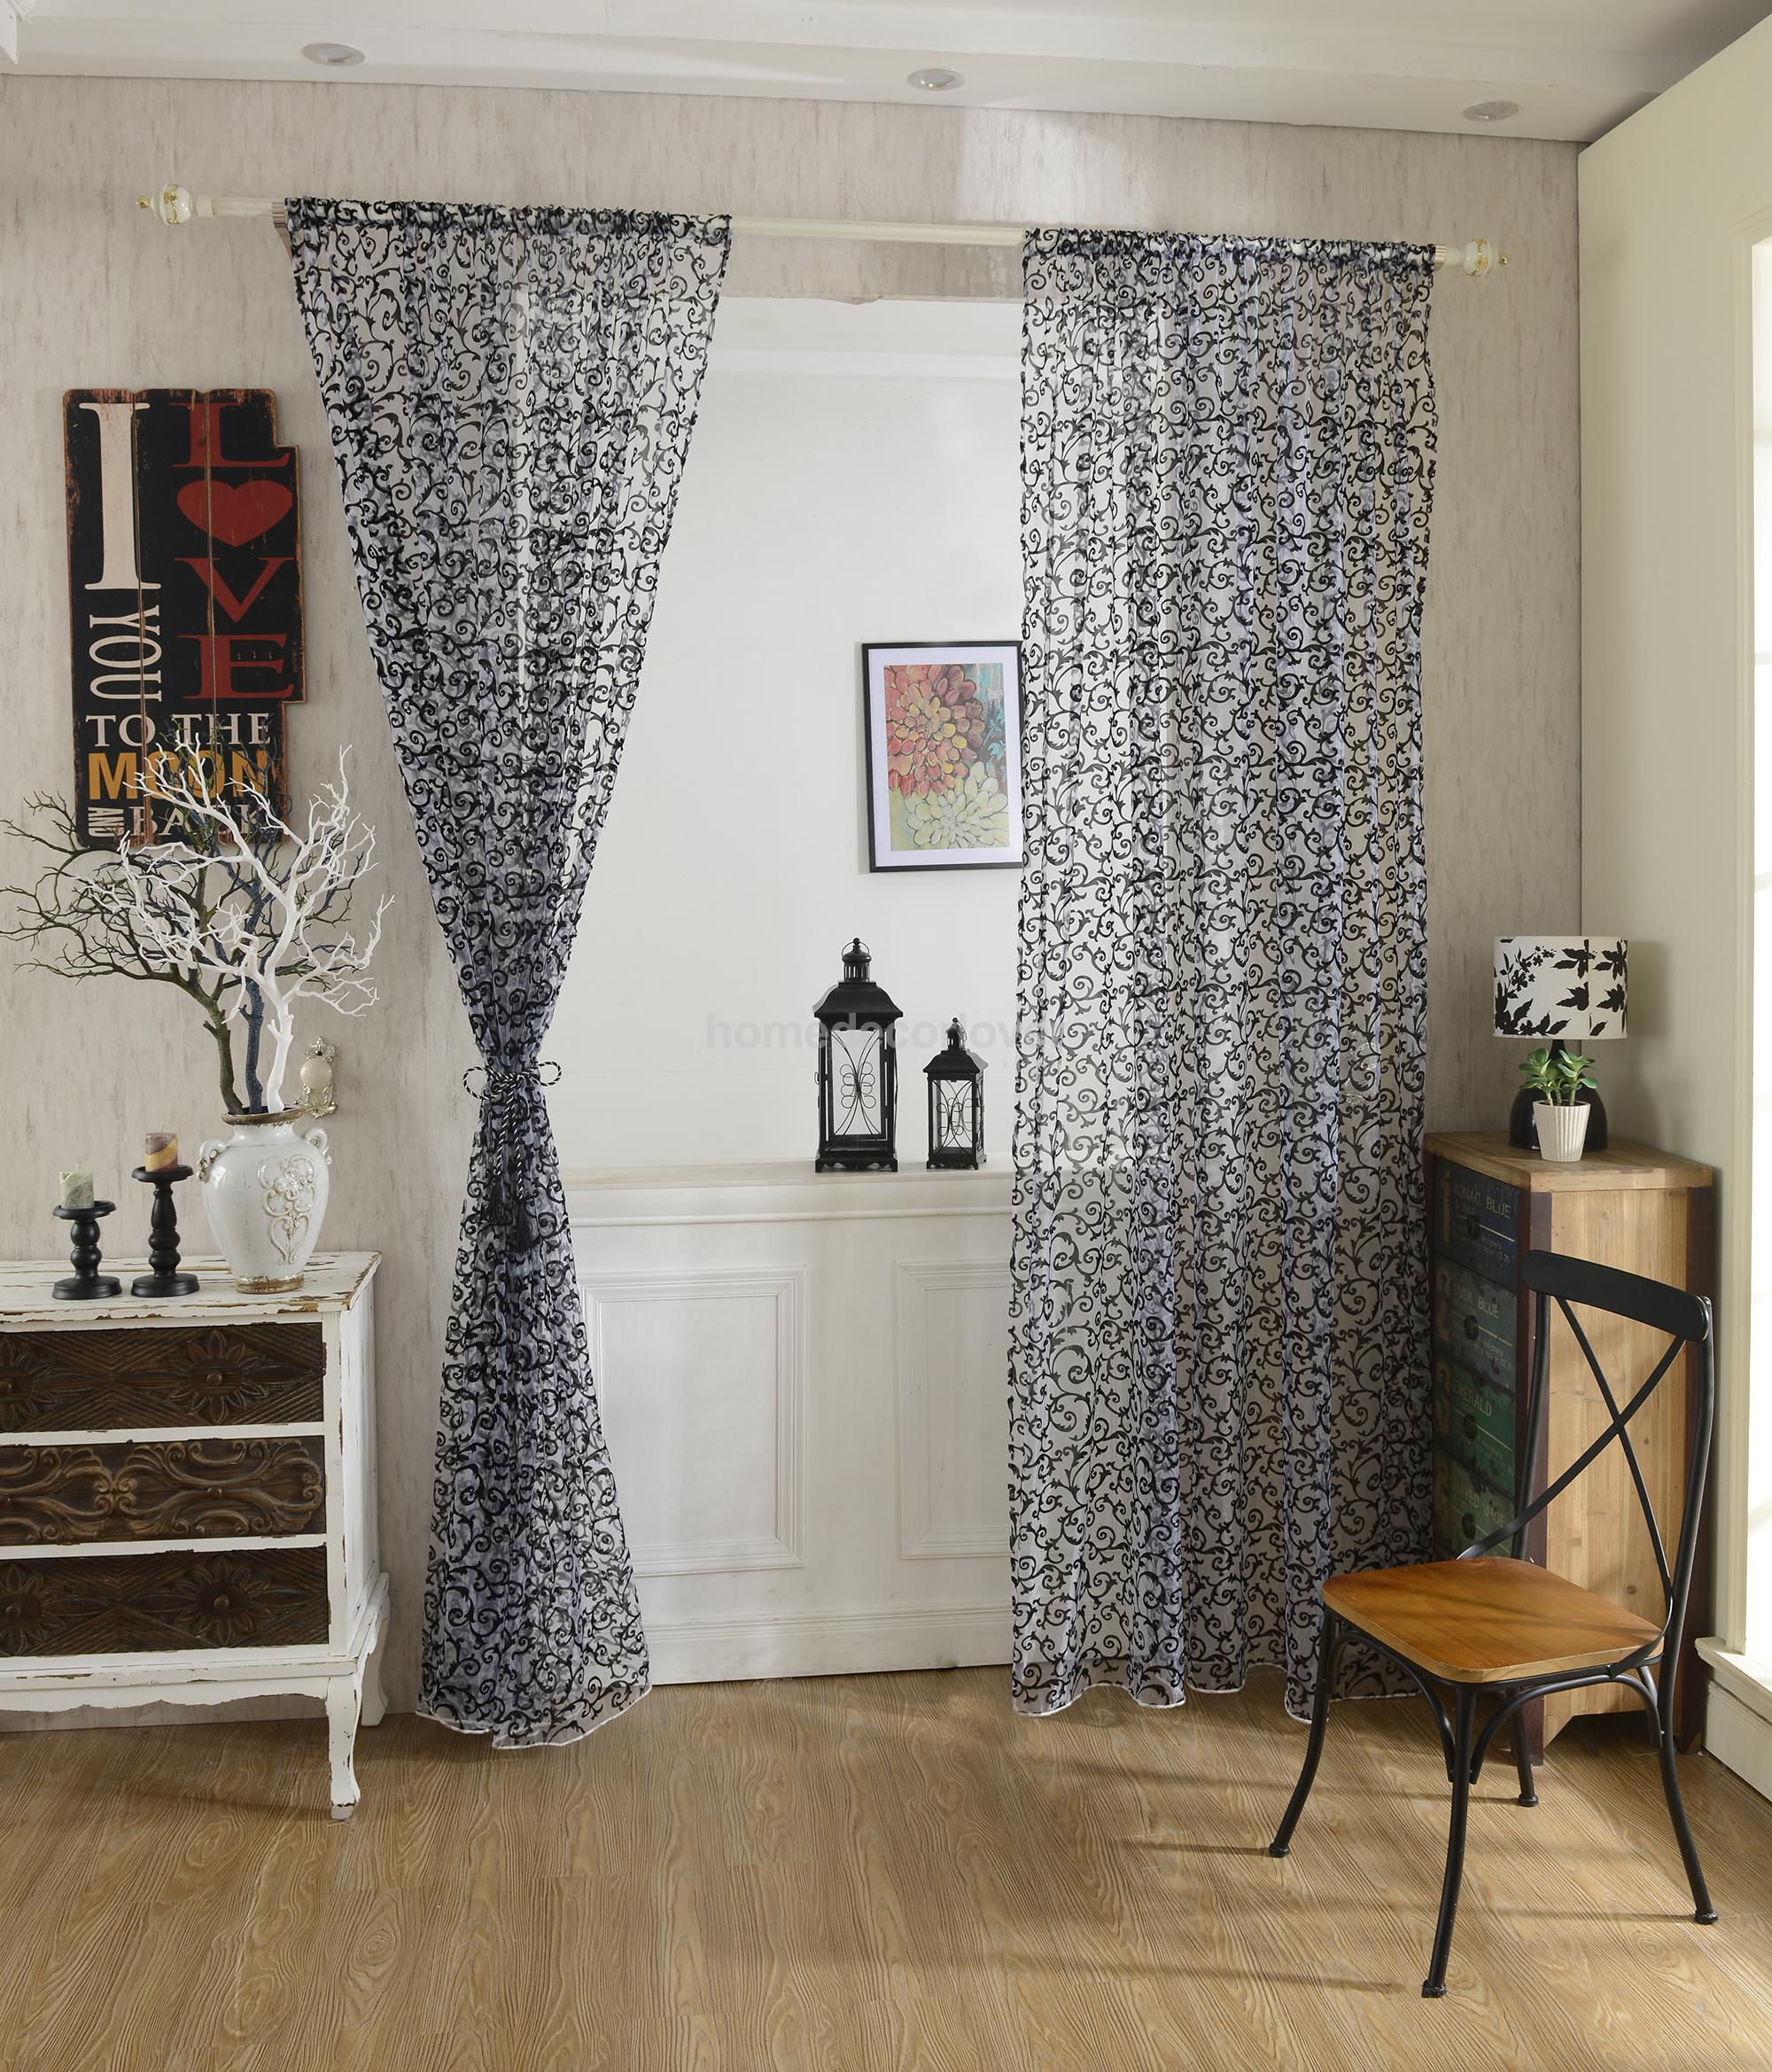 2Pcs Flocking Tulle Voile Door Window Curtain Drape Panel Sheer Scarf  Valances Home Living Room Decor